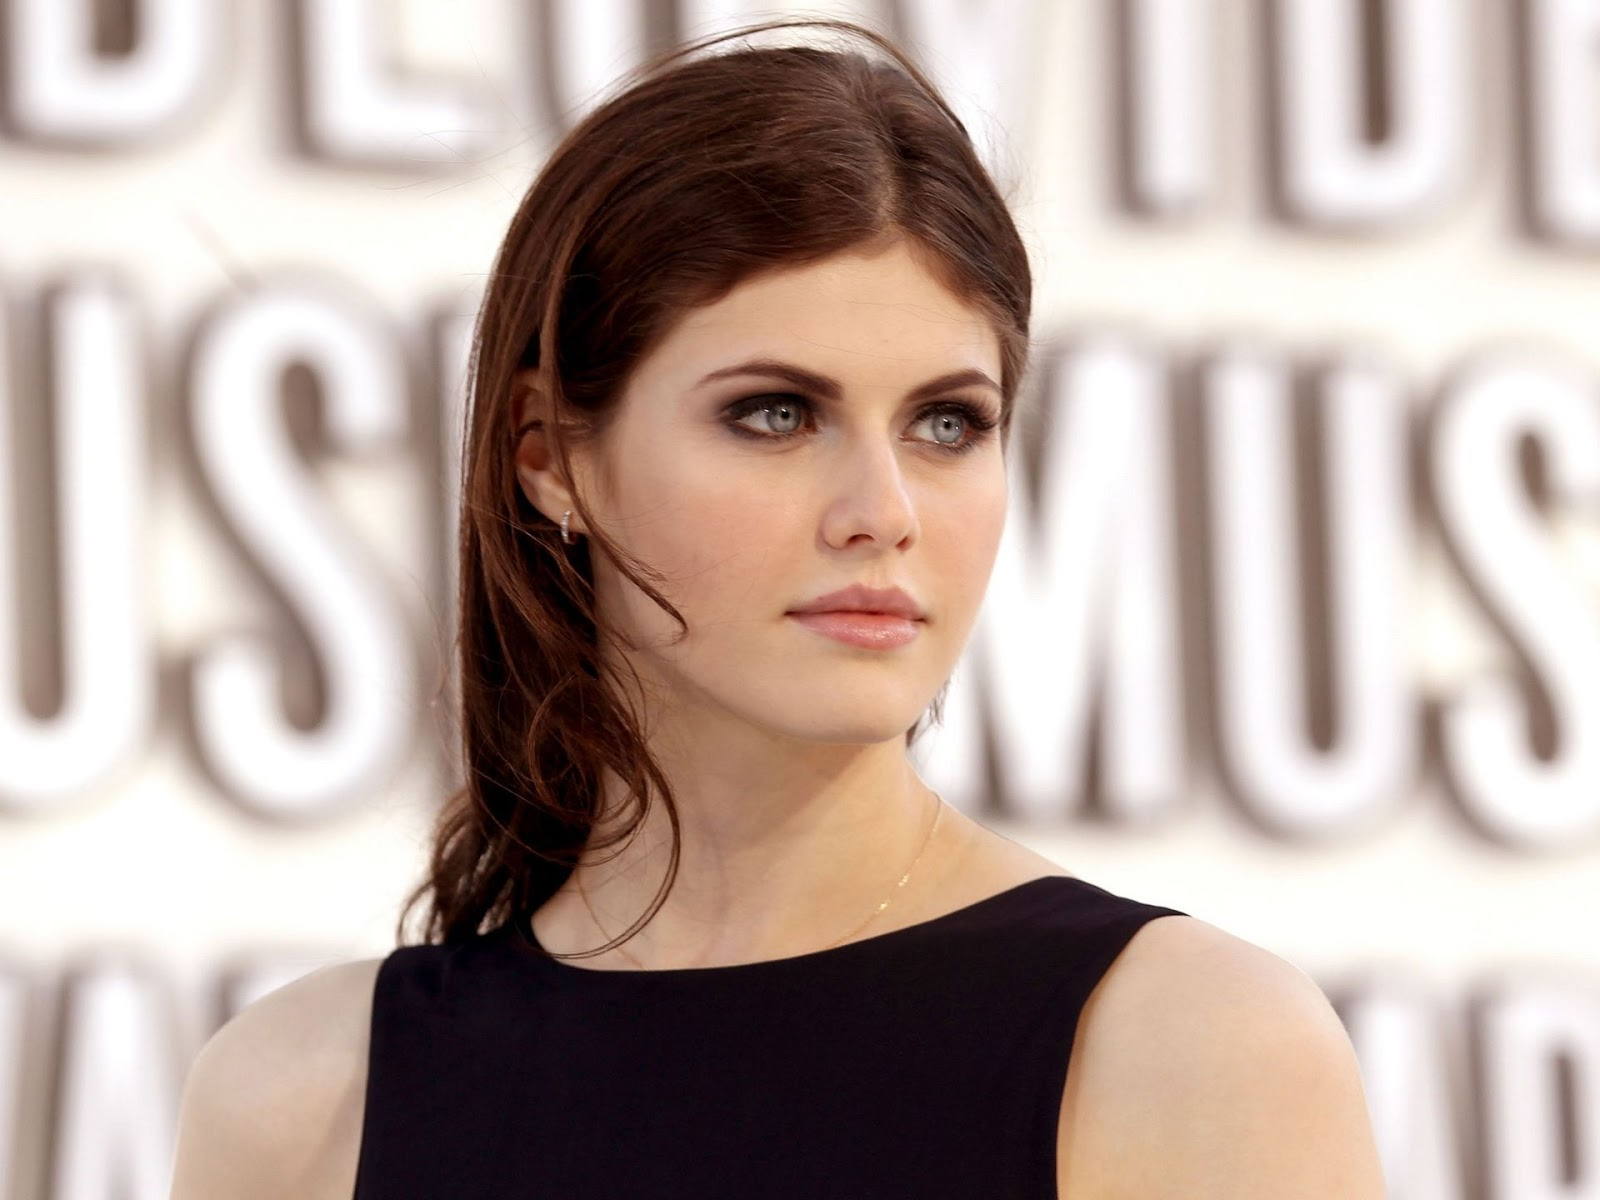 Lovely Wallpapers: Alexandra Daddario Wallpapers  Lovely Wallpape...